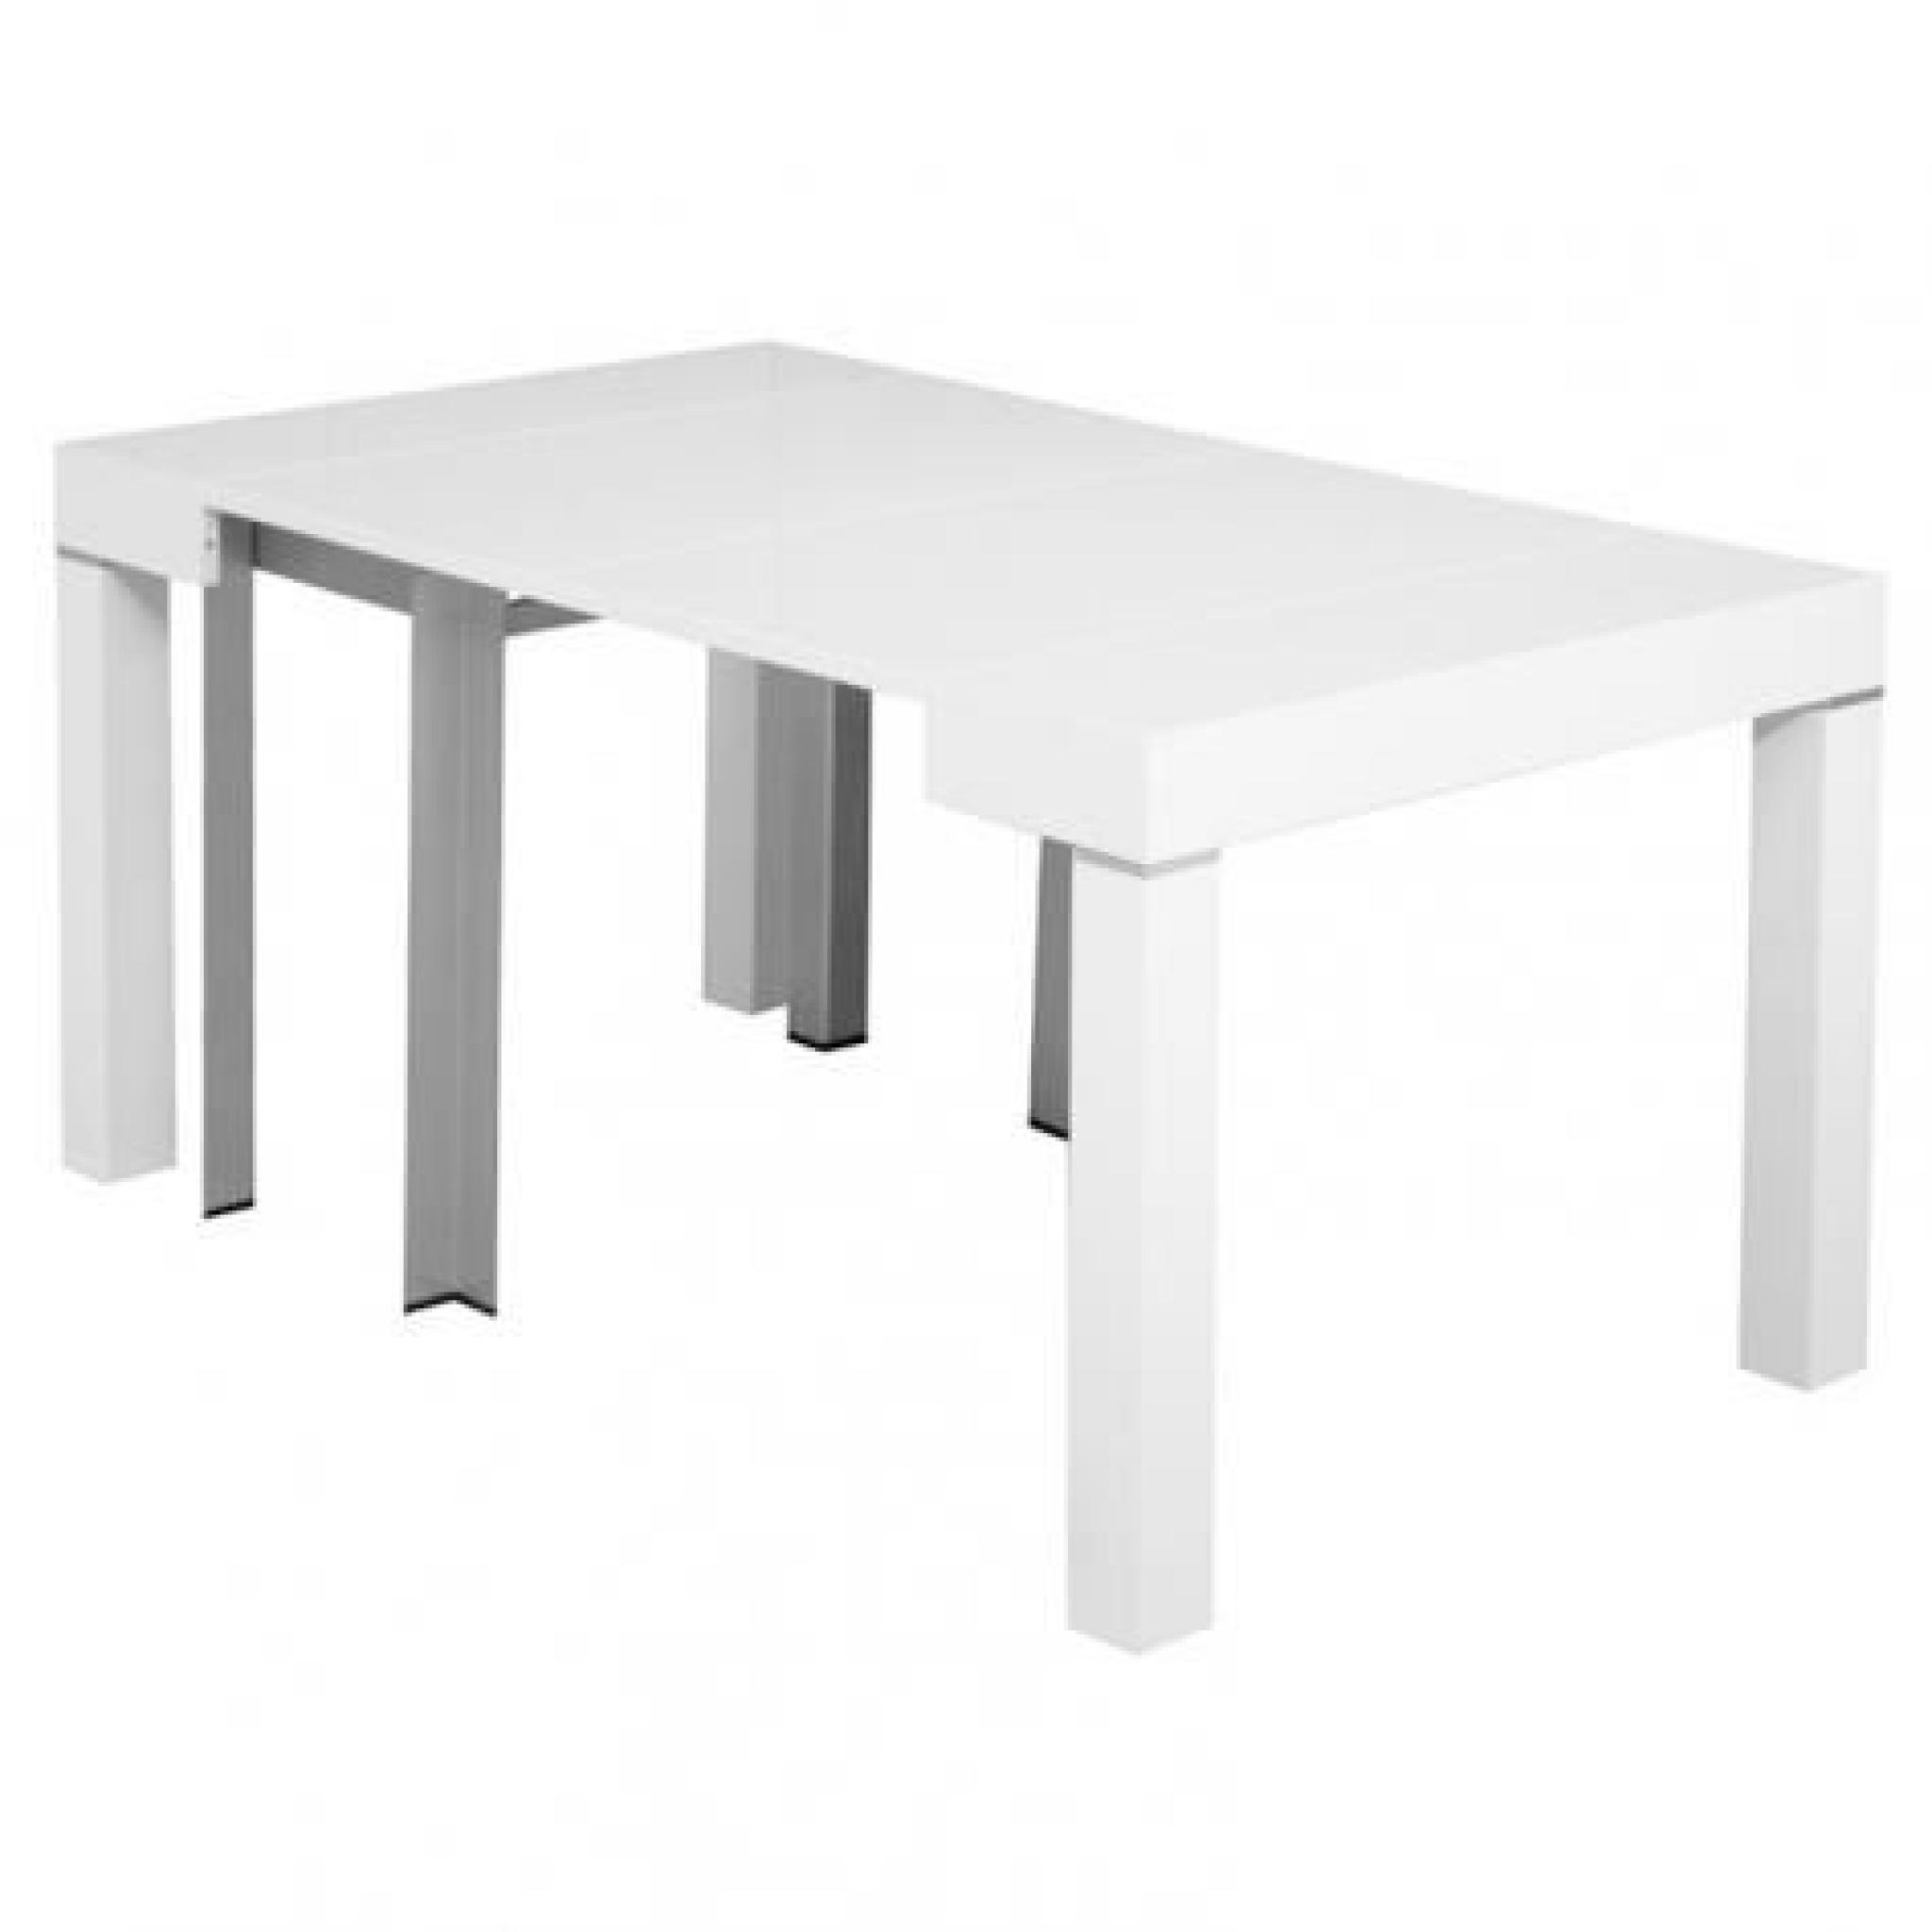 Table rallonge pas cher maison design - Table a rallonge console ...